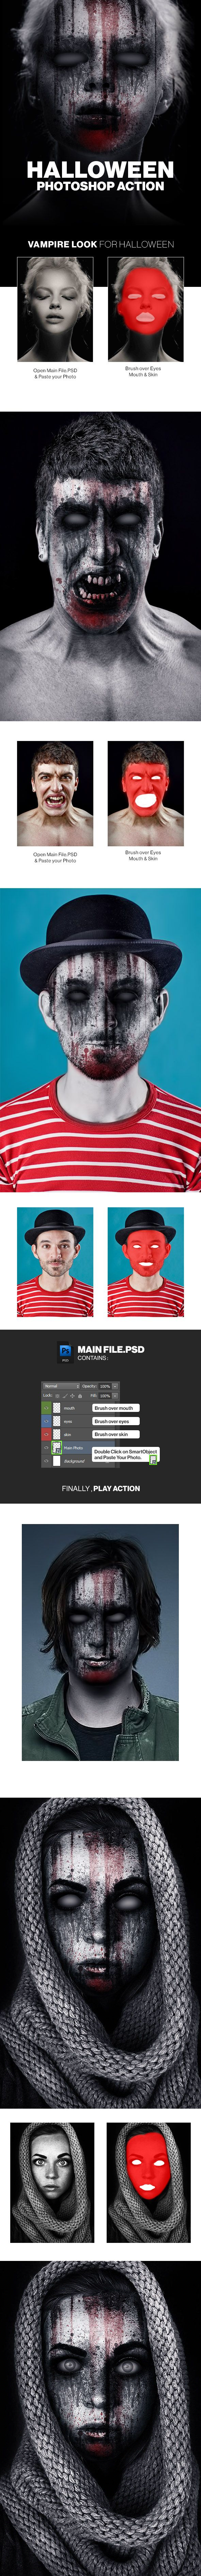 Halloween Photoshop Action  — PSD Template #party #zombie • Download ➝ https://graphicriver.net/item/halloween-photoshop-action/18145626?ref=pxcr